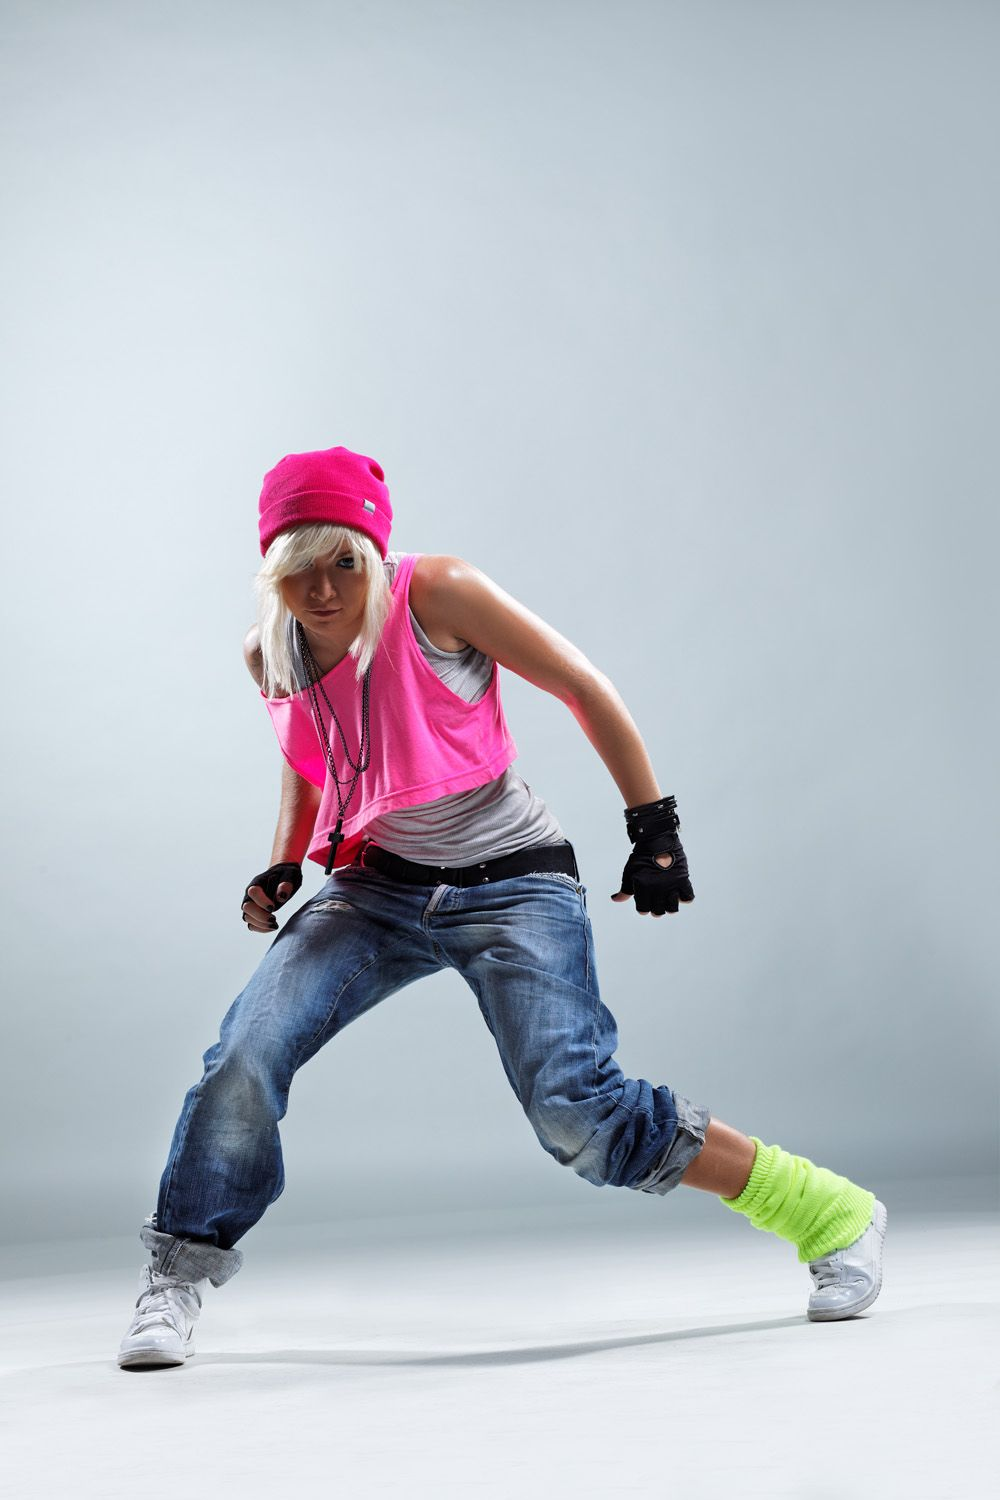 Medium Hairstyles 2011 Hip Hop Dance Wallpapers Hip Hop Dance Photography Dance Photography Poses Hip Hop Outfits